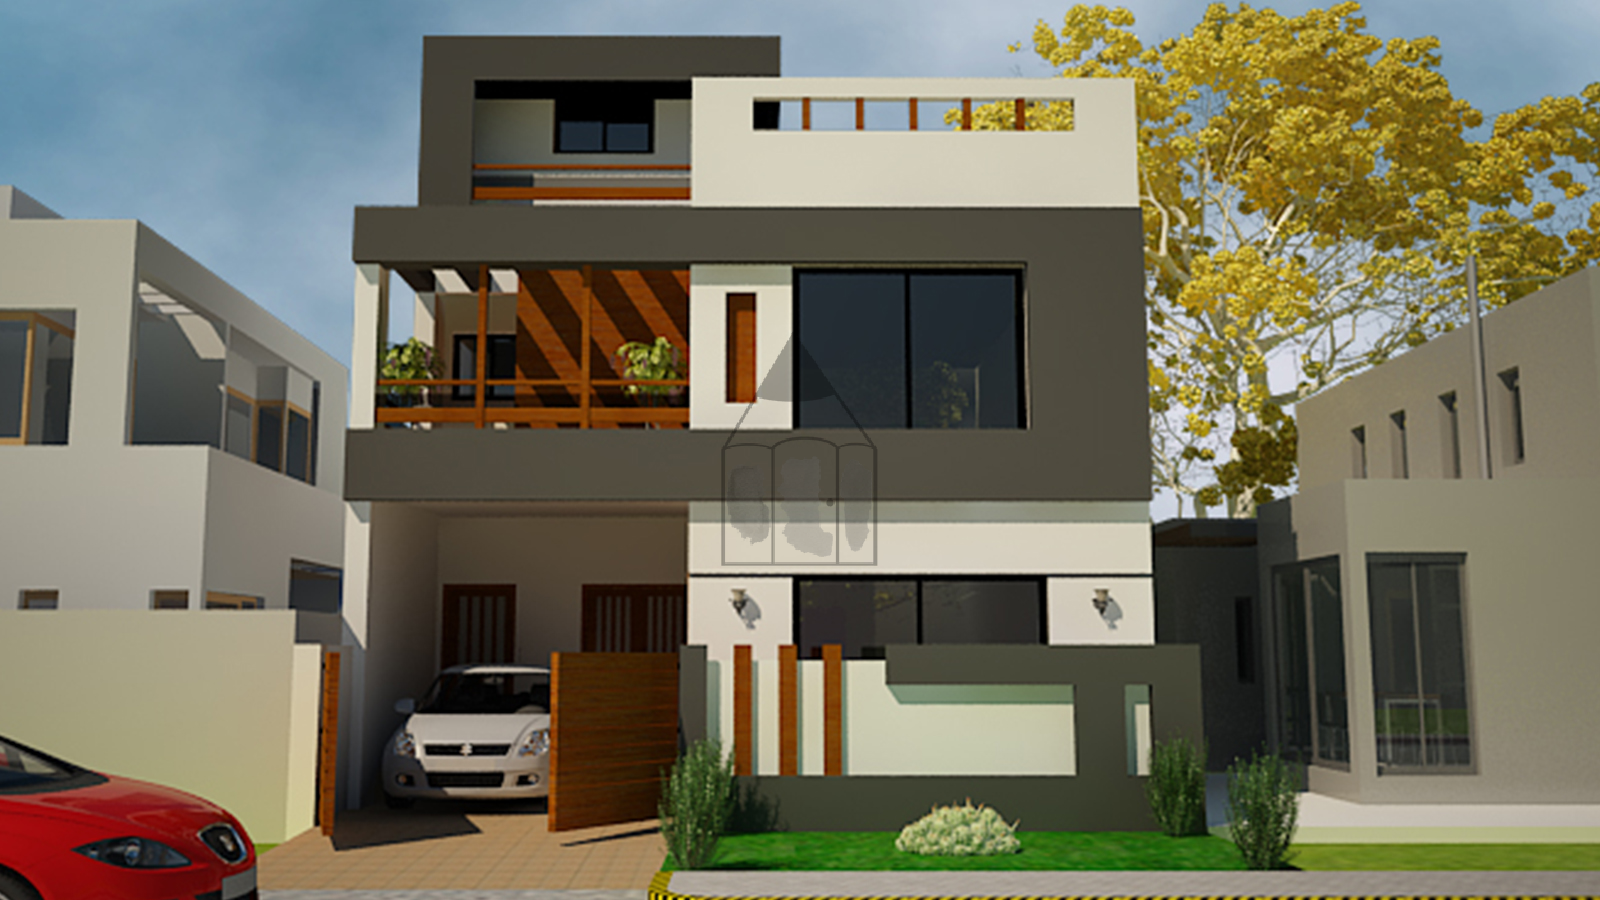 5 Marla House Front Design